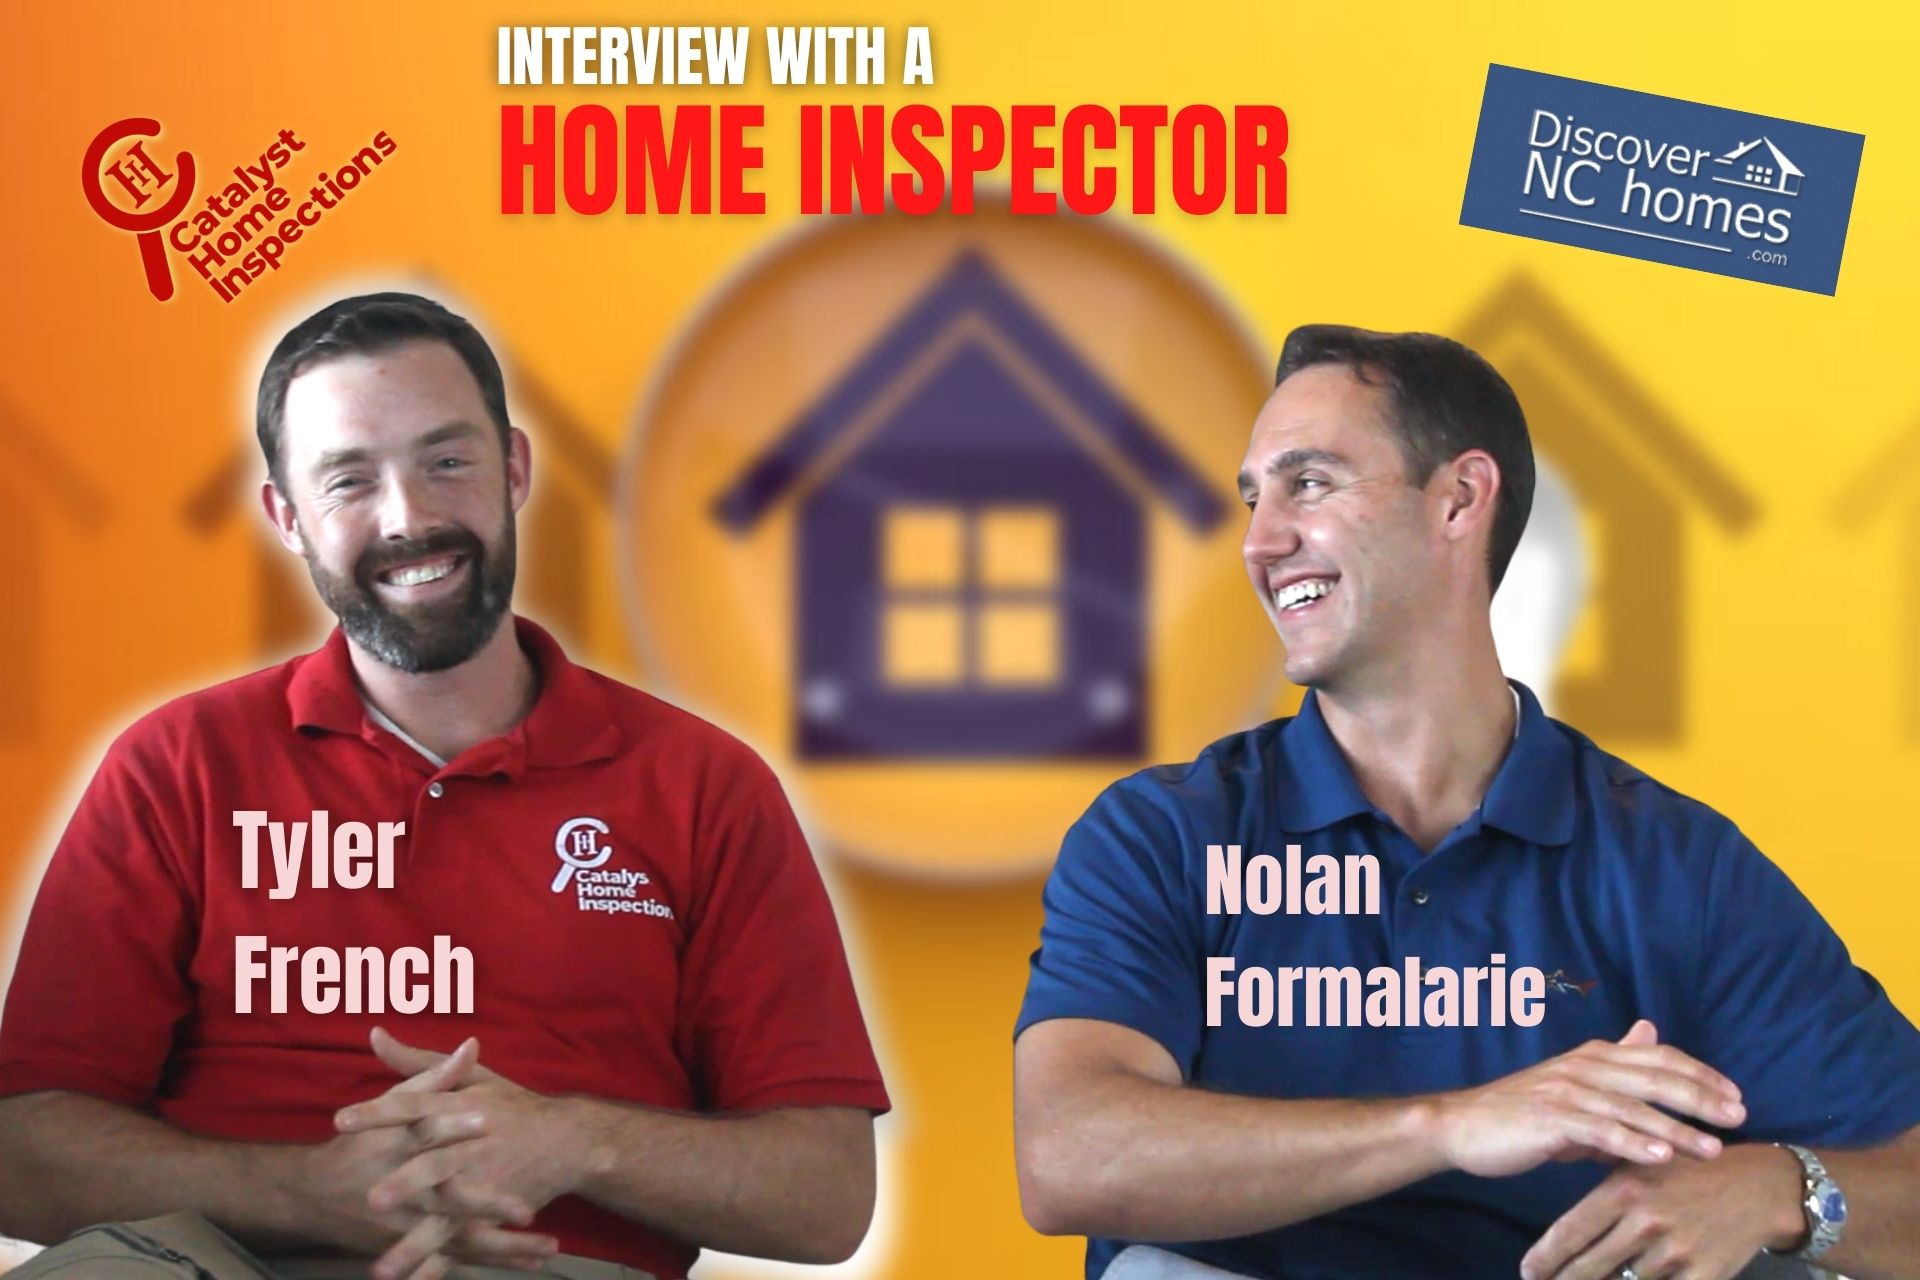 Interview with Tyler French Home Inspector - How to turn Off Water and Power